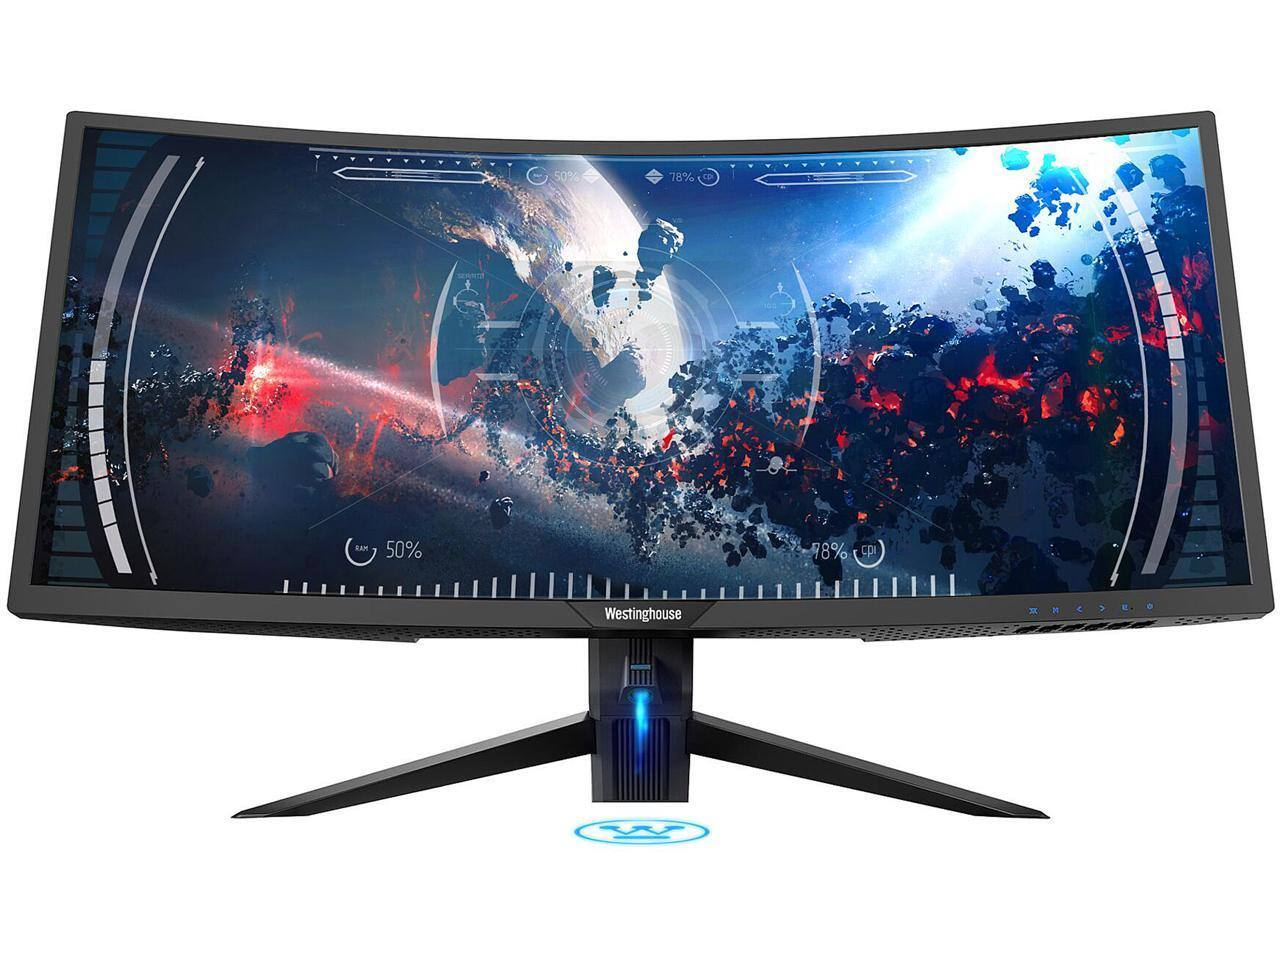 "Westinghouse WC34DX9019 34"" UWQHD 3440 x 1440 2K Resolution 100Hz AMD FreeSync Technology Flicker-Free Ultra Widescreen Curved Backlit LED Gaming Monitor $309.99 + FS"